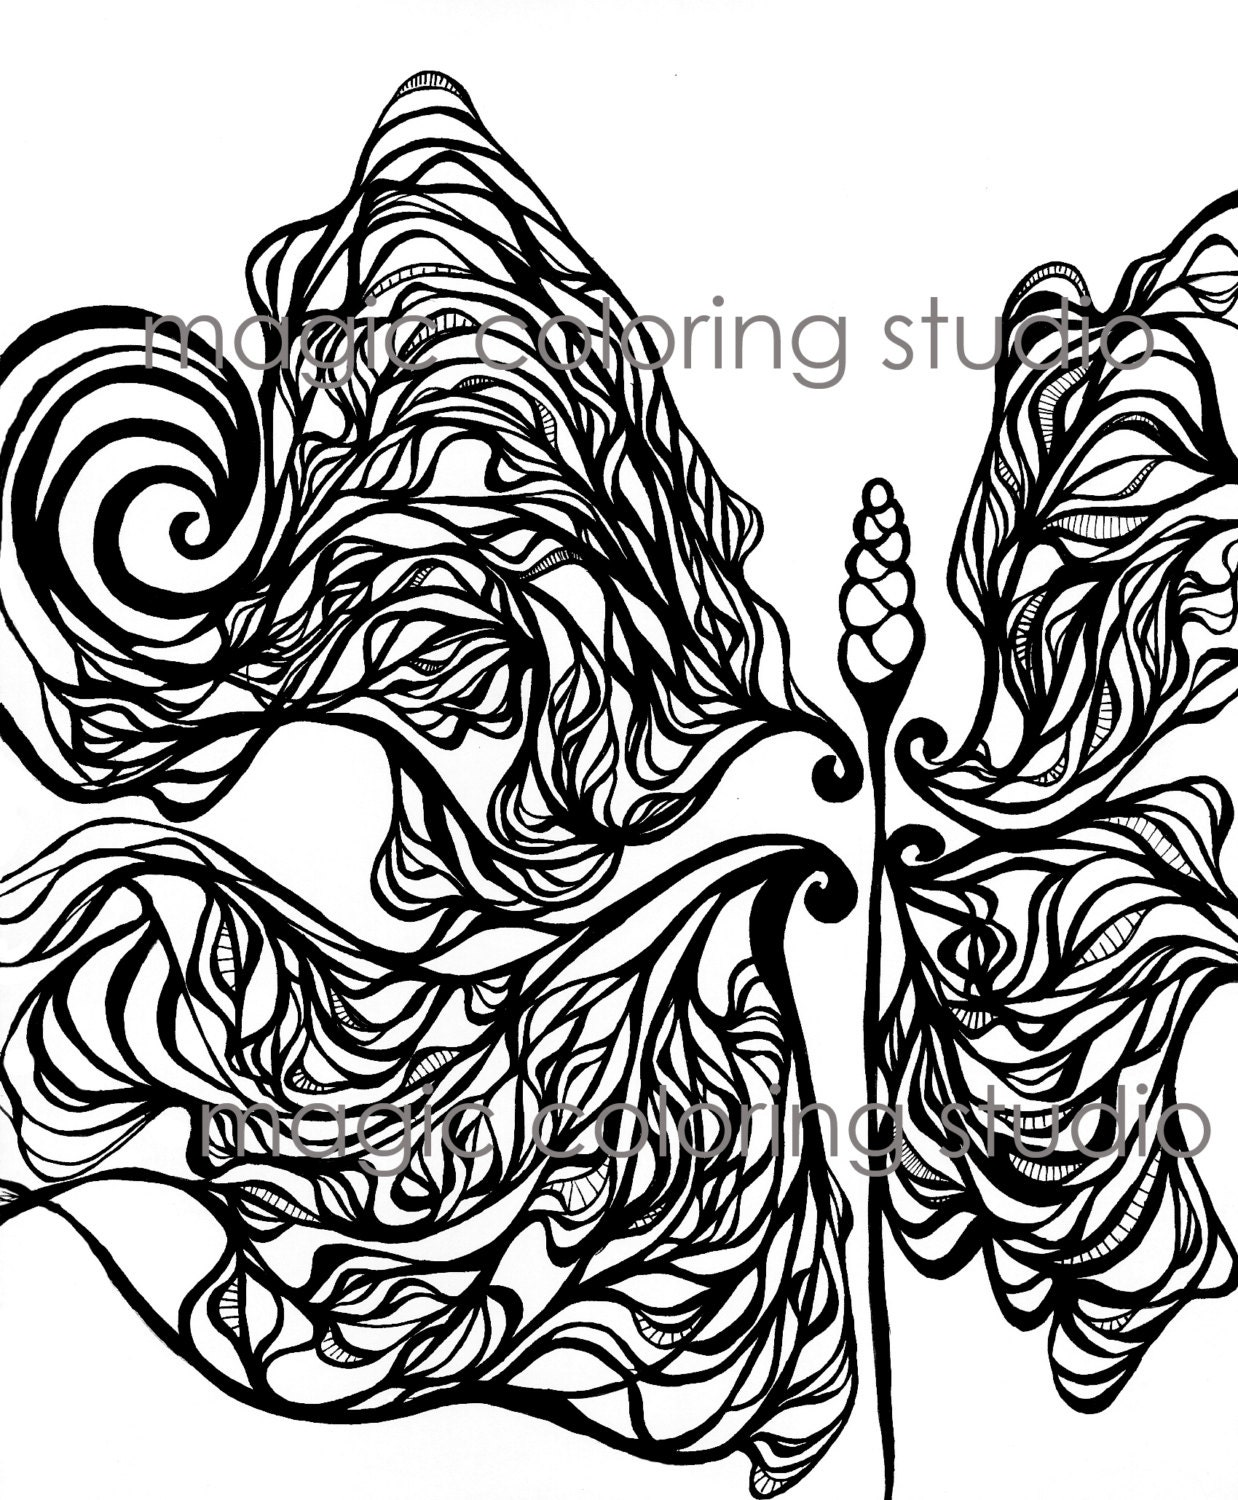 Flower art coloring pages - This Is A Digital File